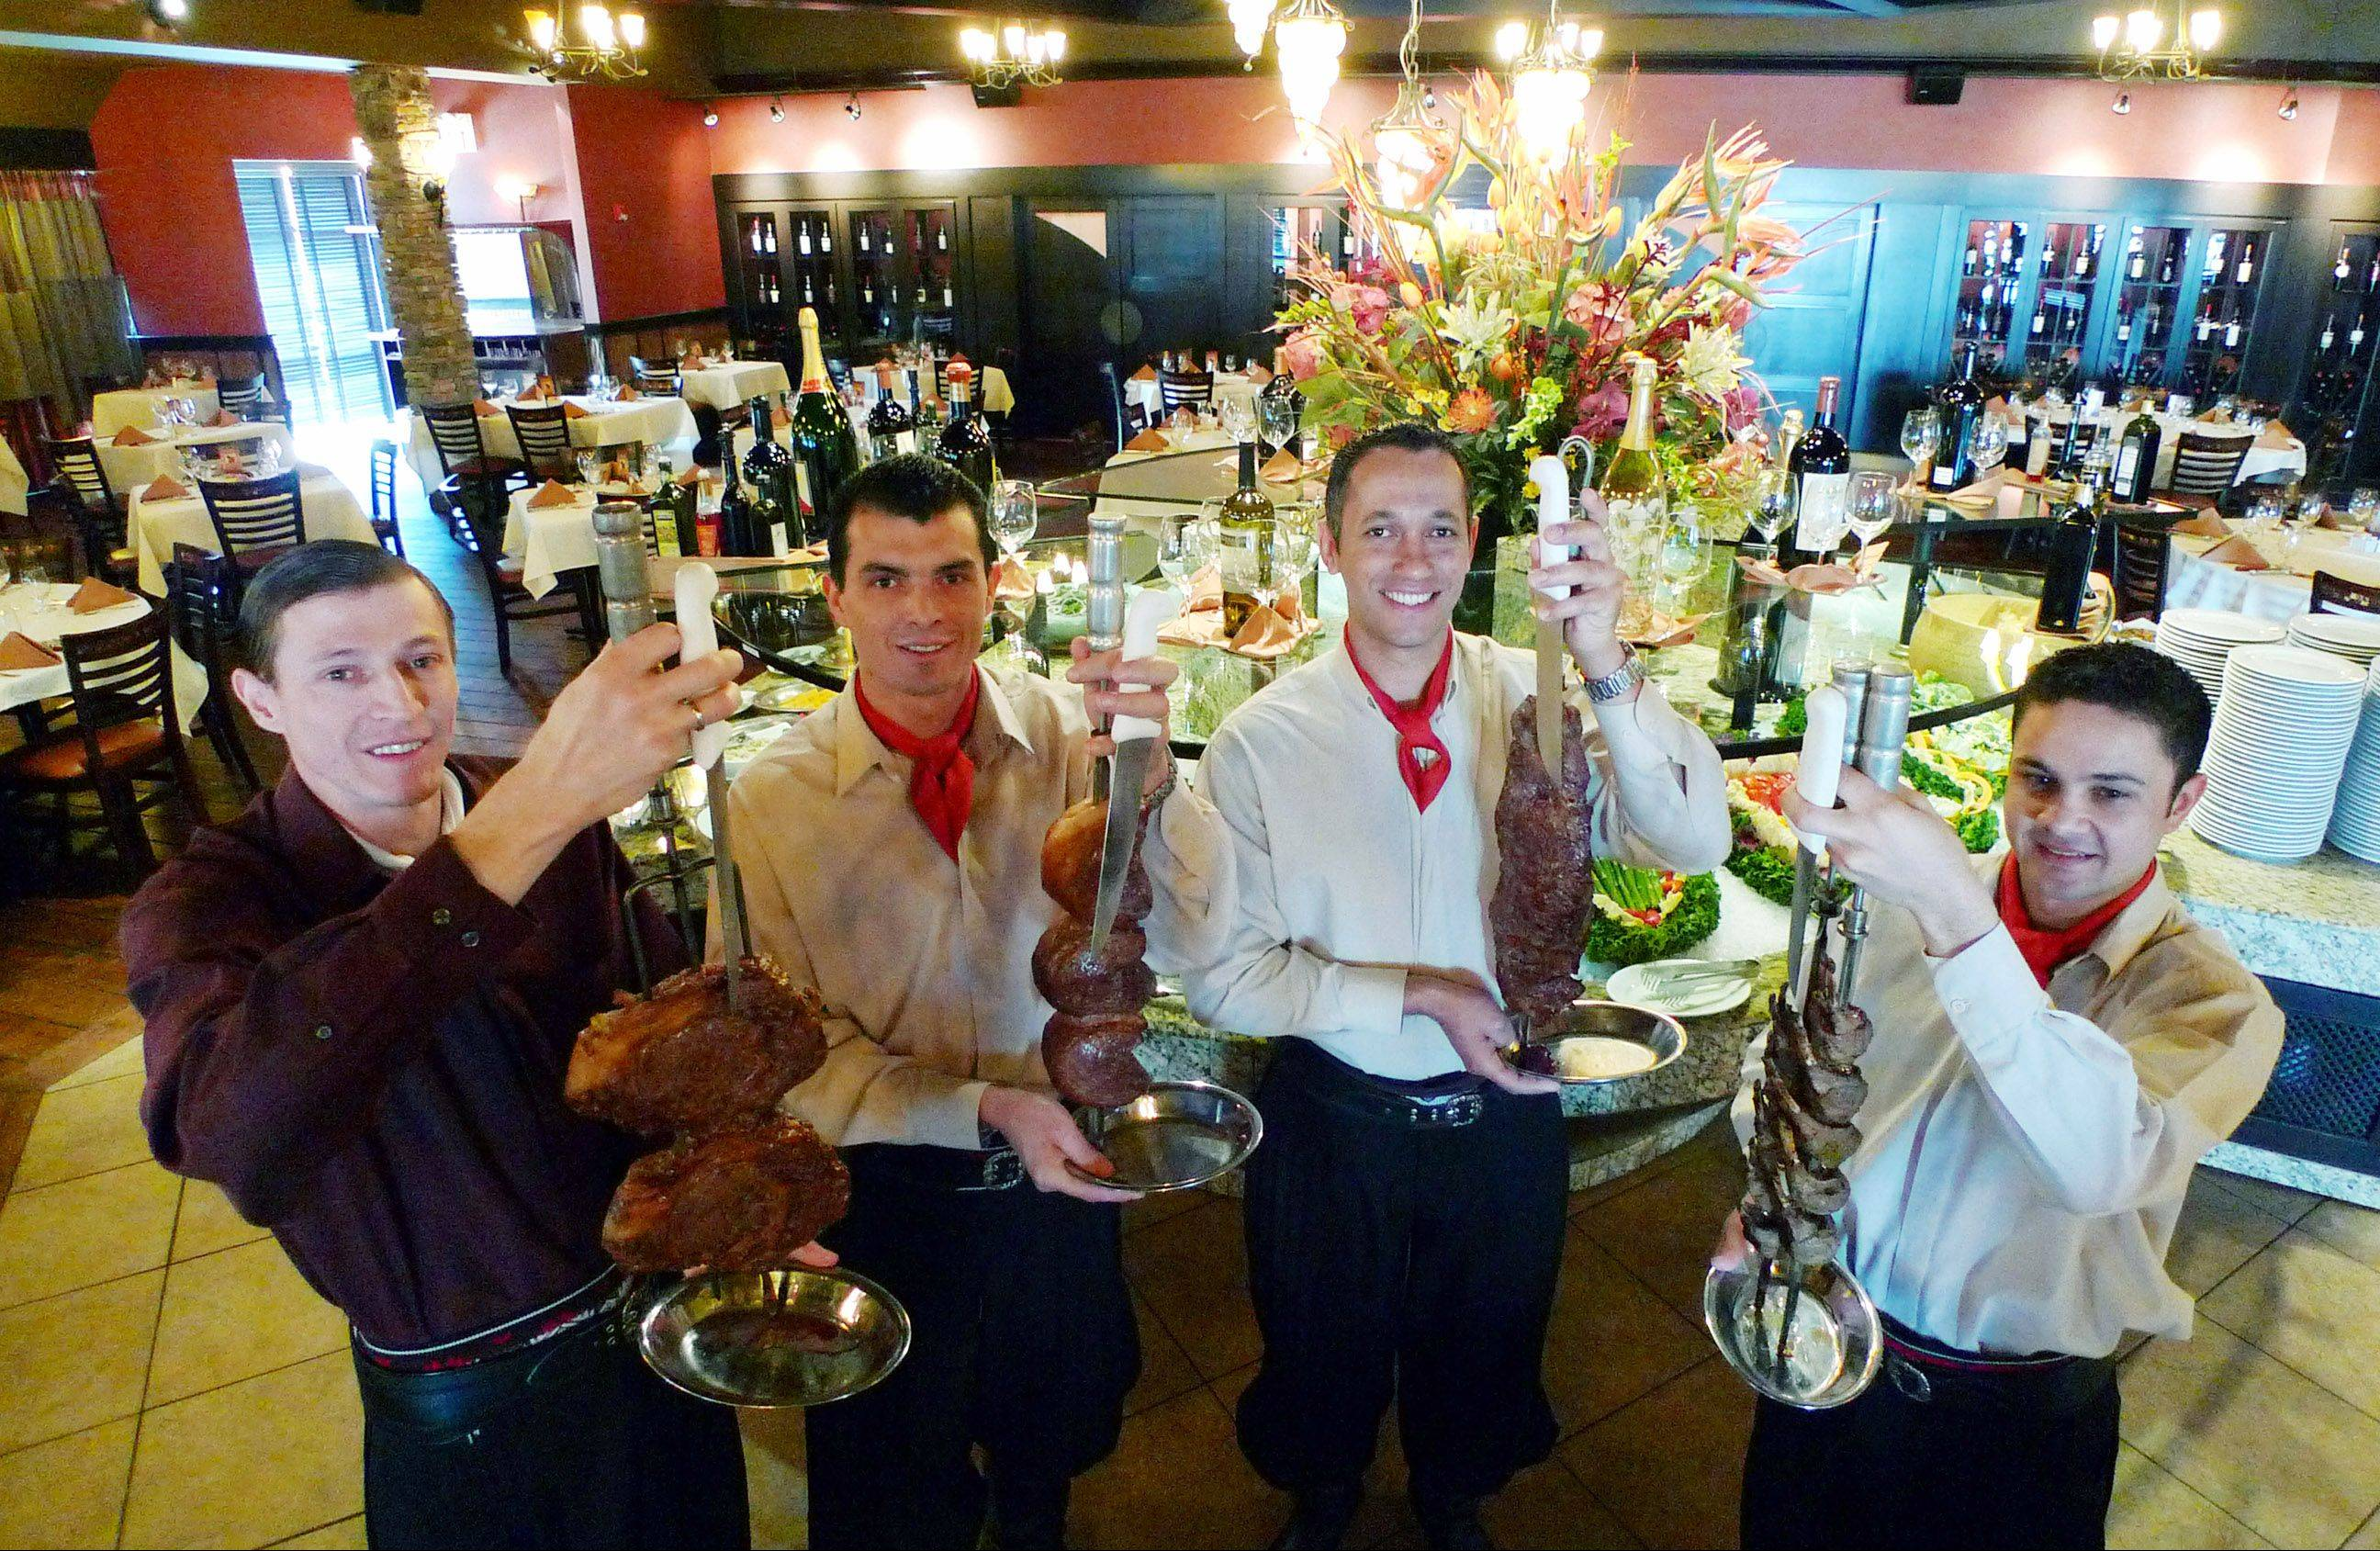 The gauchos at Chama Gaucha Brazilian Steakhouse in Downers Grove show off their signature skewered meats.